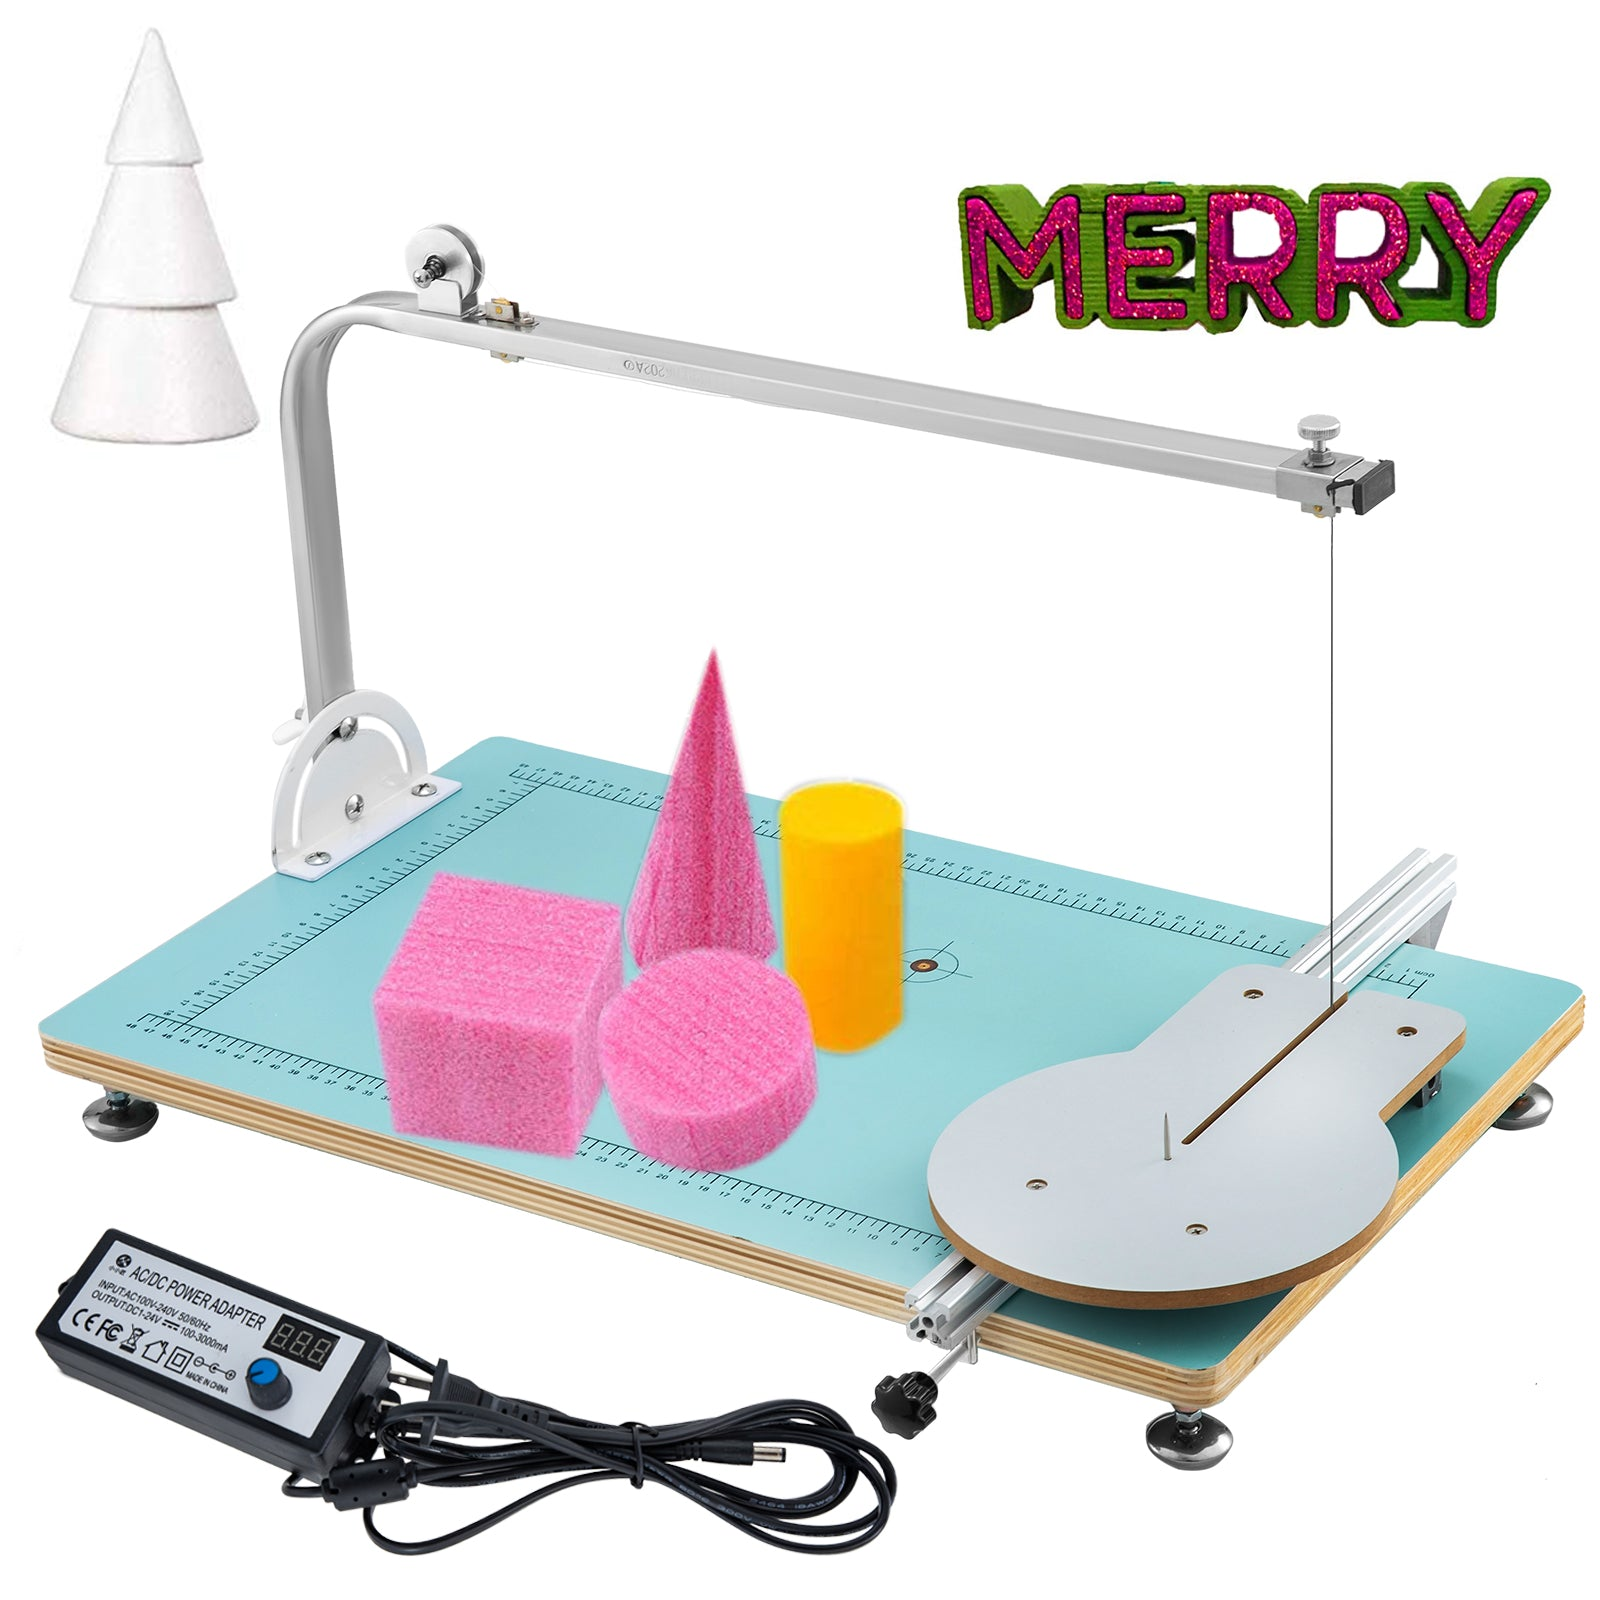 Board Foam Cutting Machine Styrofoam Cutter Hot Wire Work Table Tool 110v